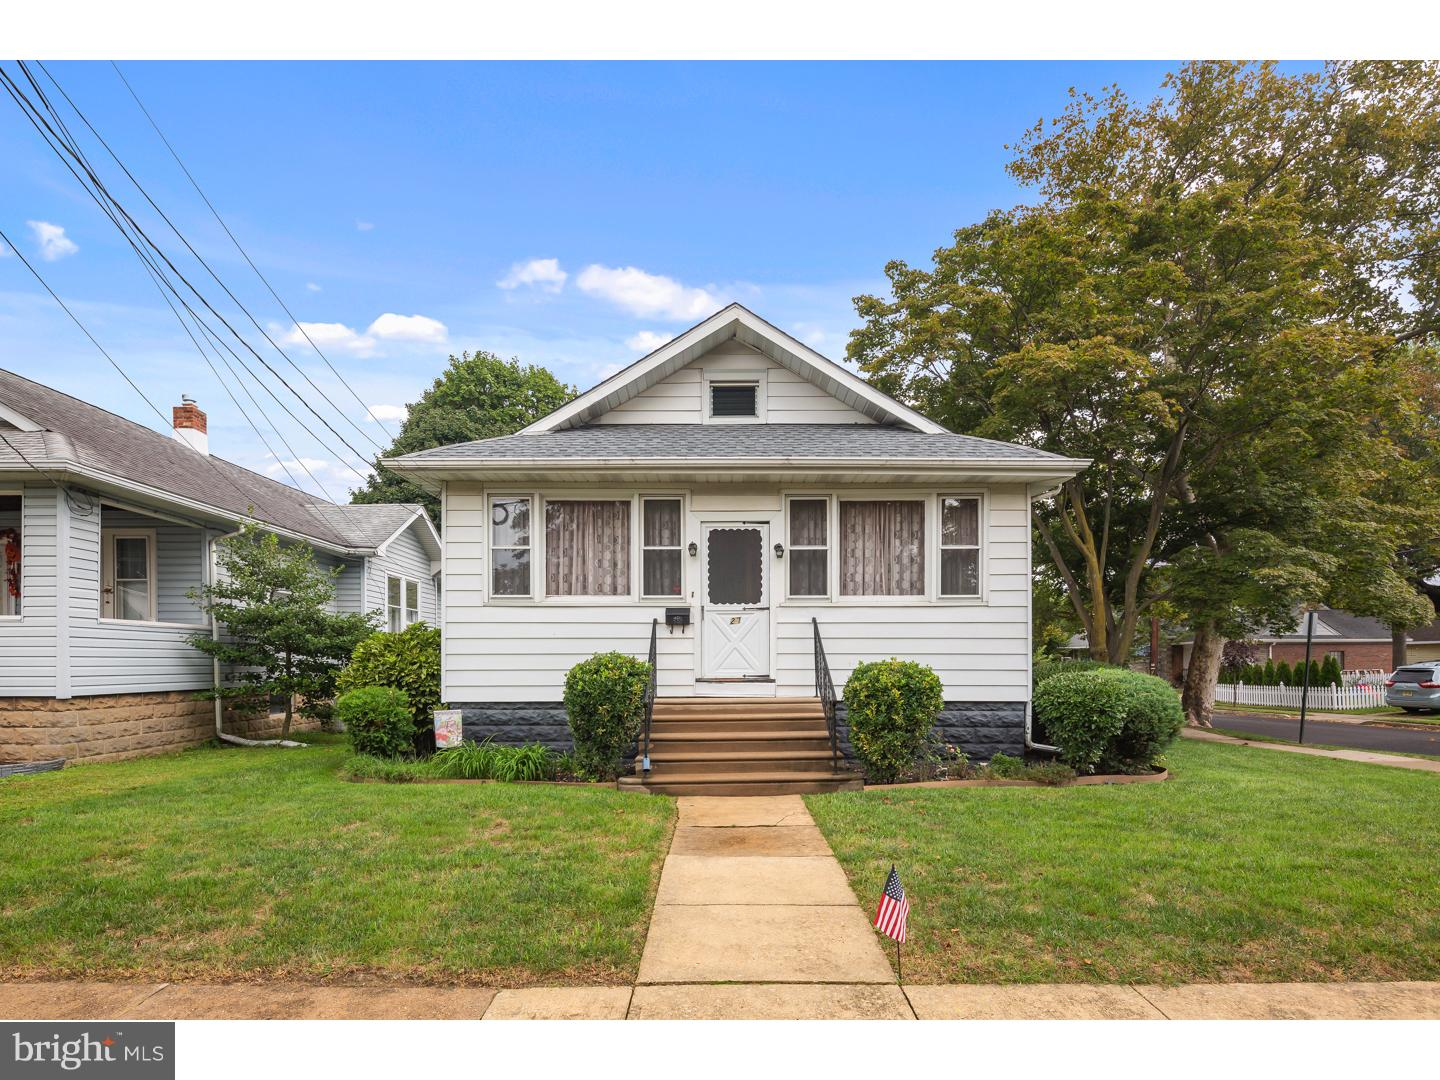 Single Family Home for Sale at 27 E GREENWOOD Avenue Haddon Township, New Jersey 08107 United States